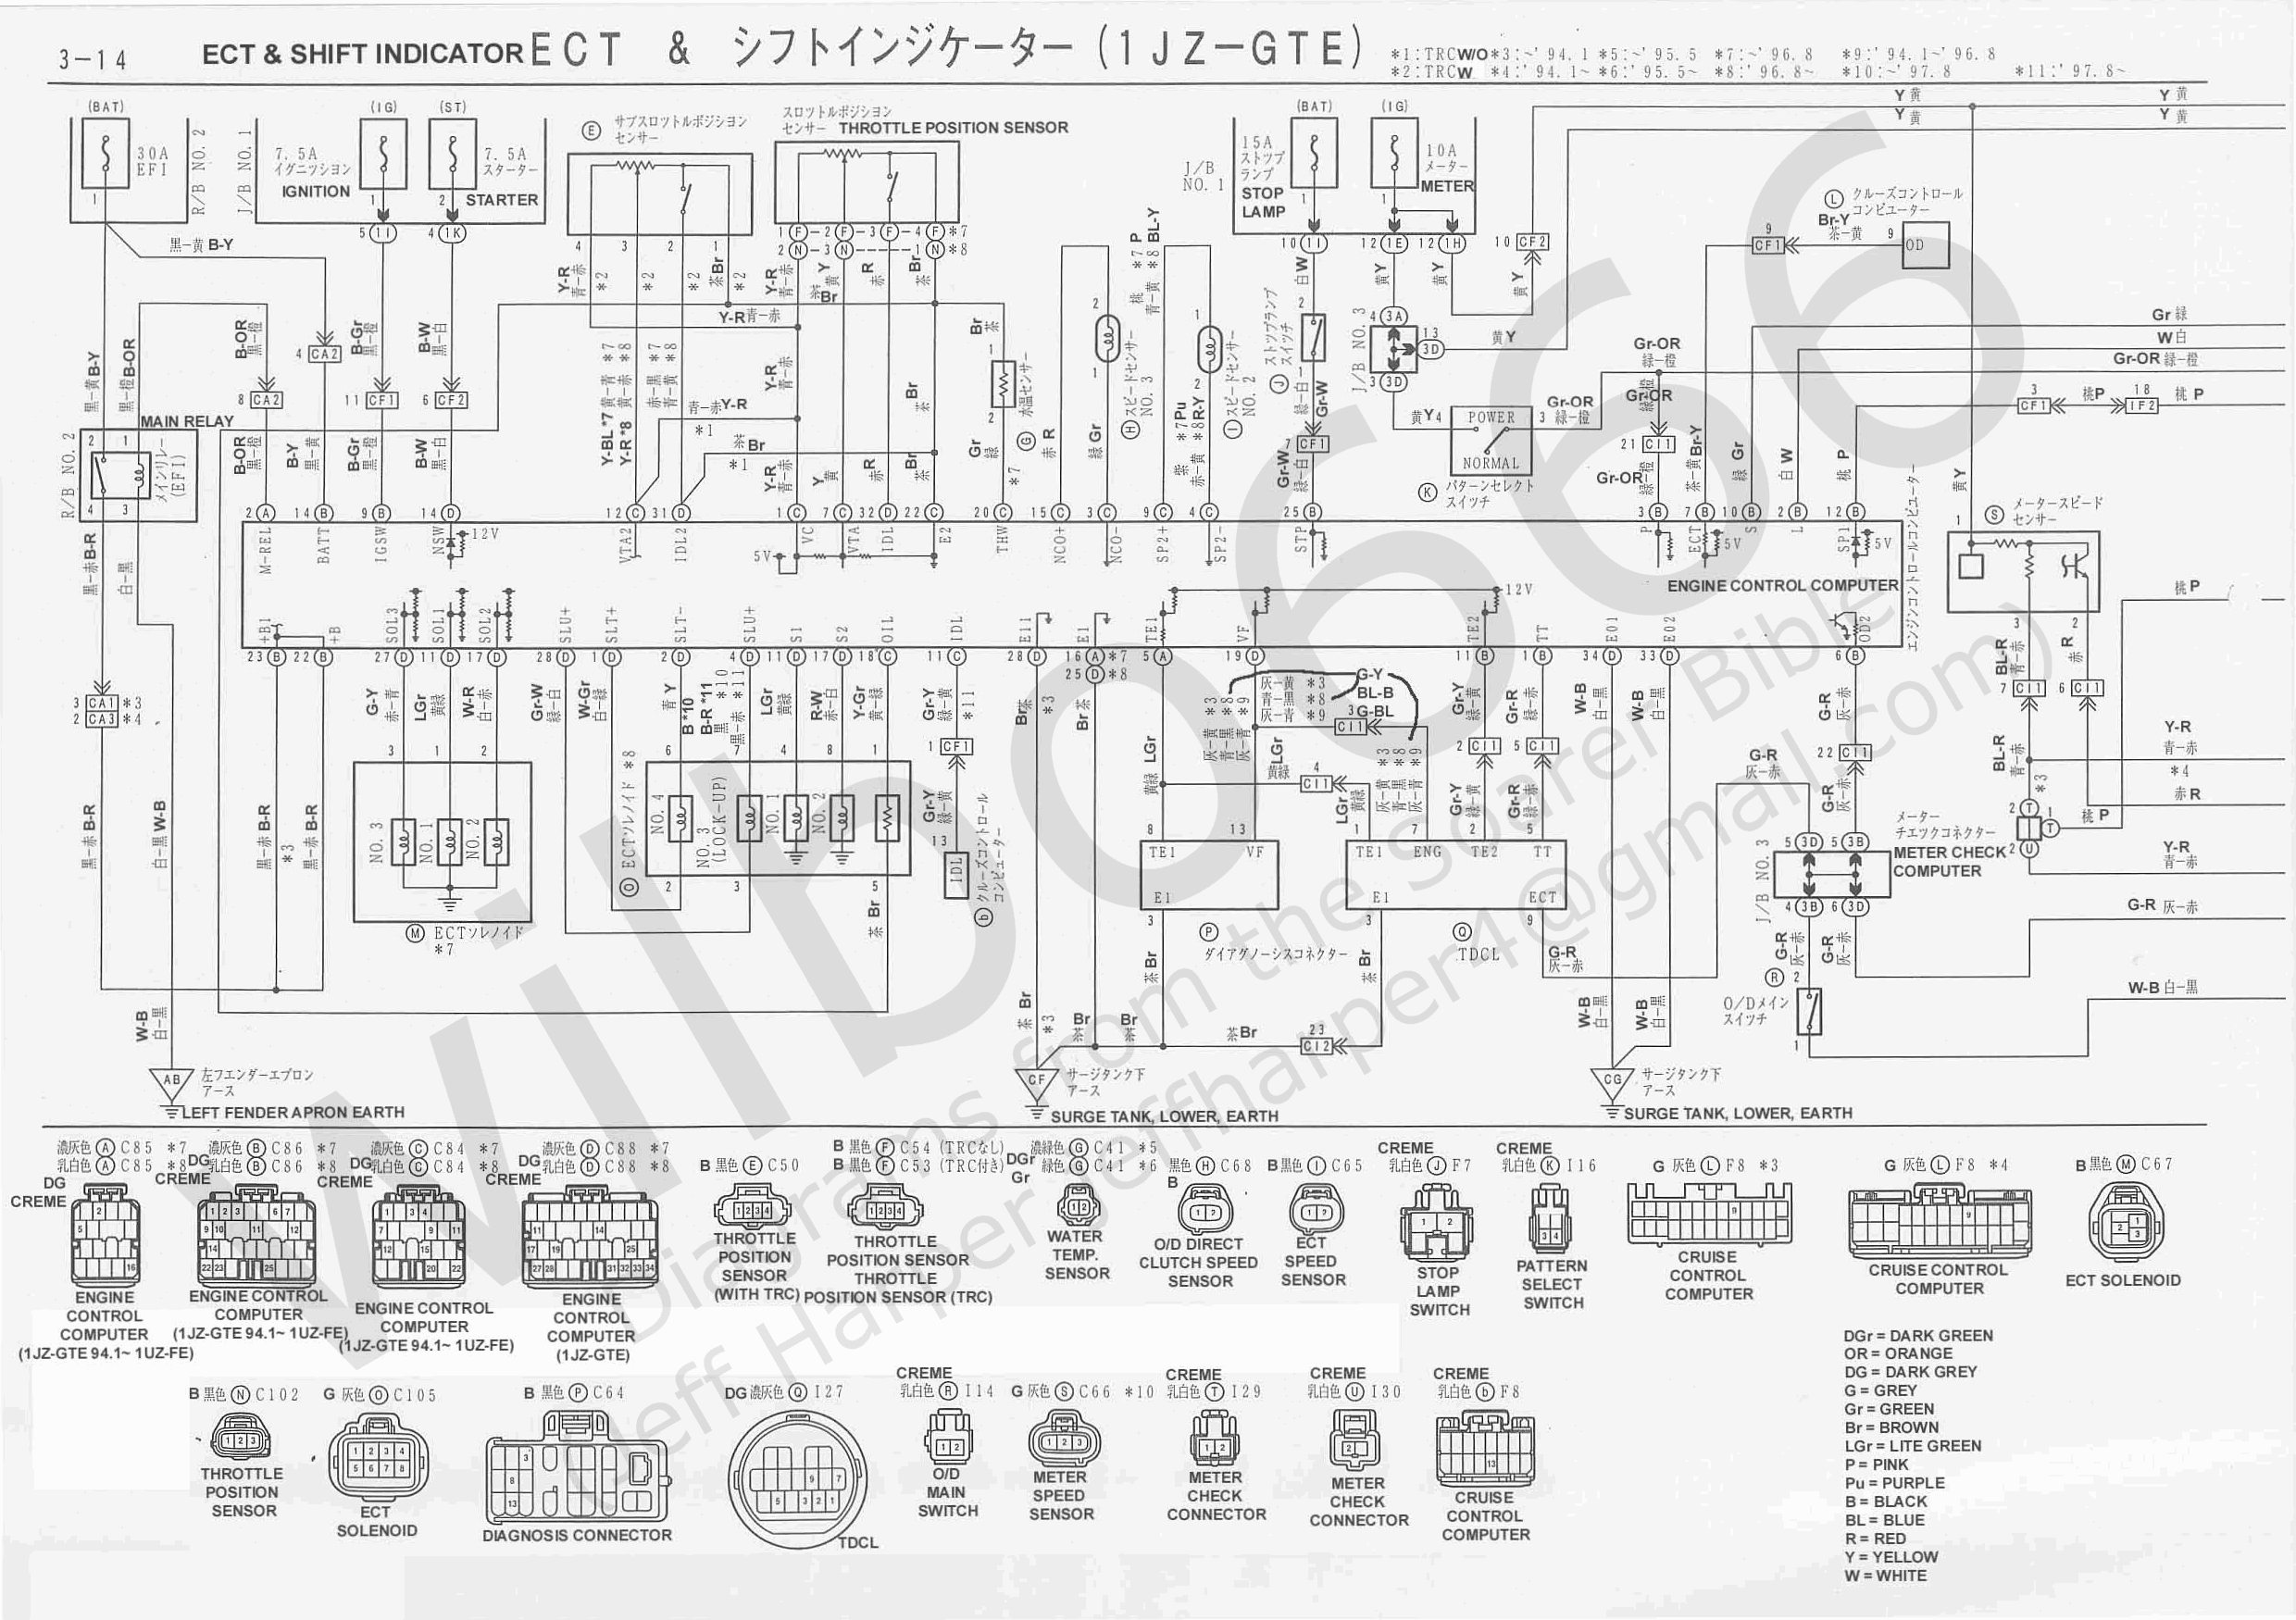 xZZ3x Electrical Wiring Diagram 6737105 3 14 wilbo666 [licensed for non commercial use only] mirror 1jz gte 1jz wiring diagram at soozxer.org